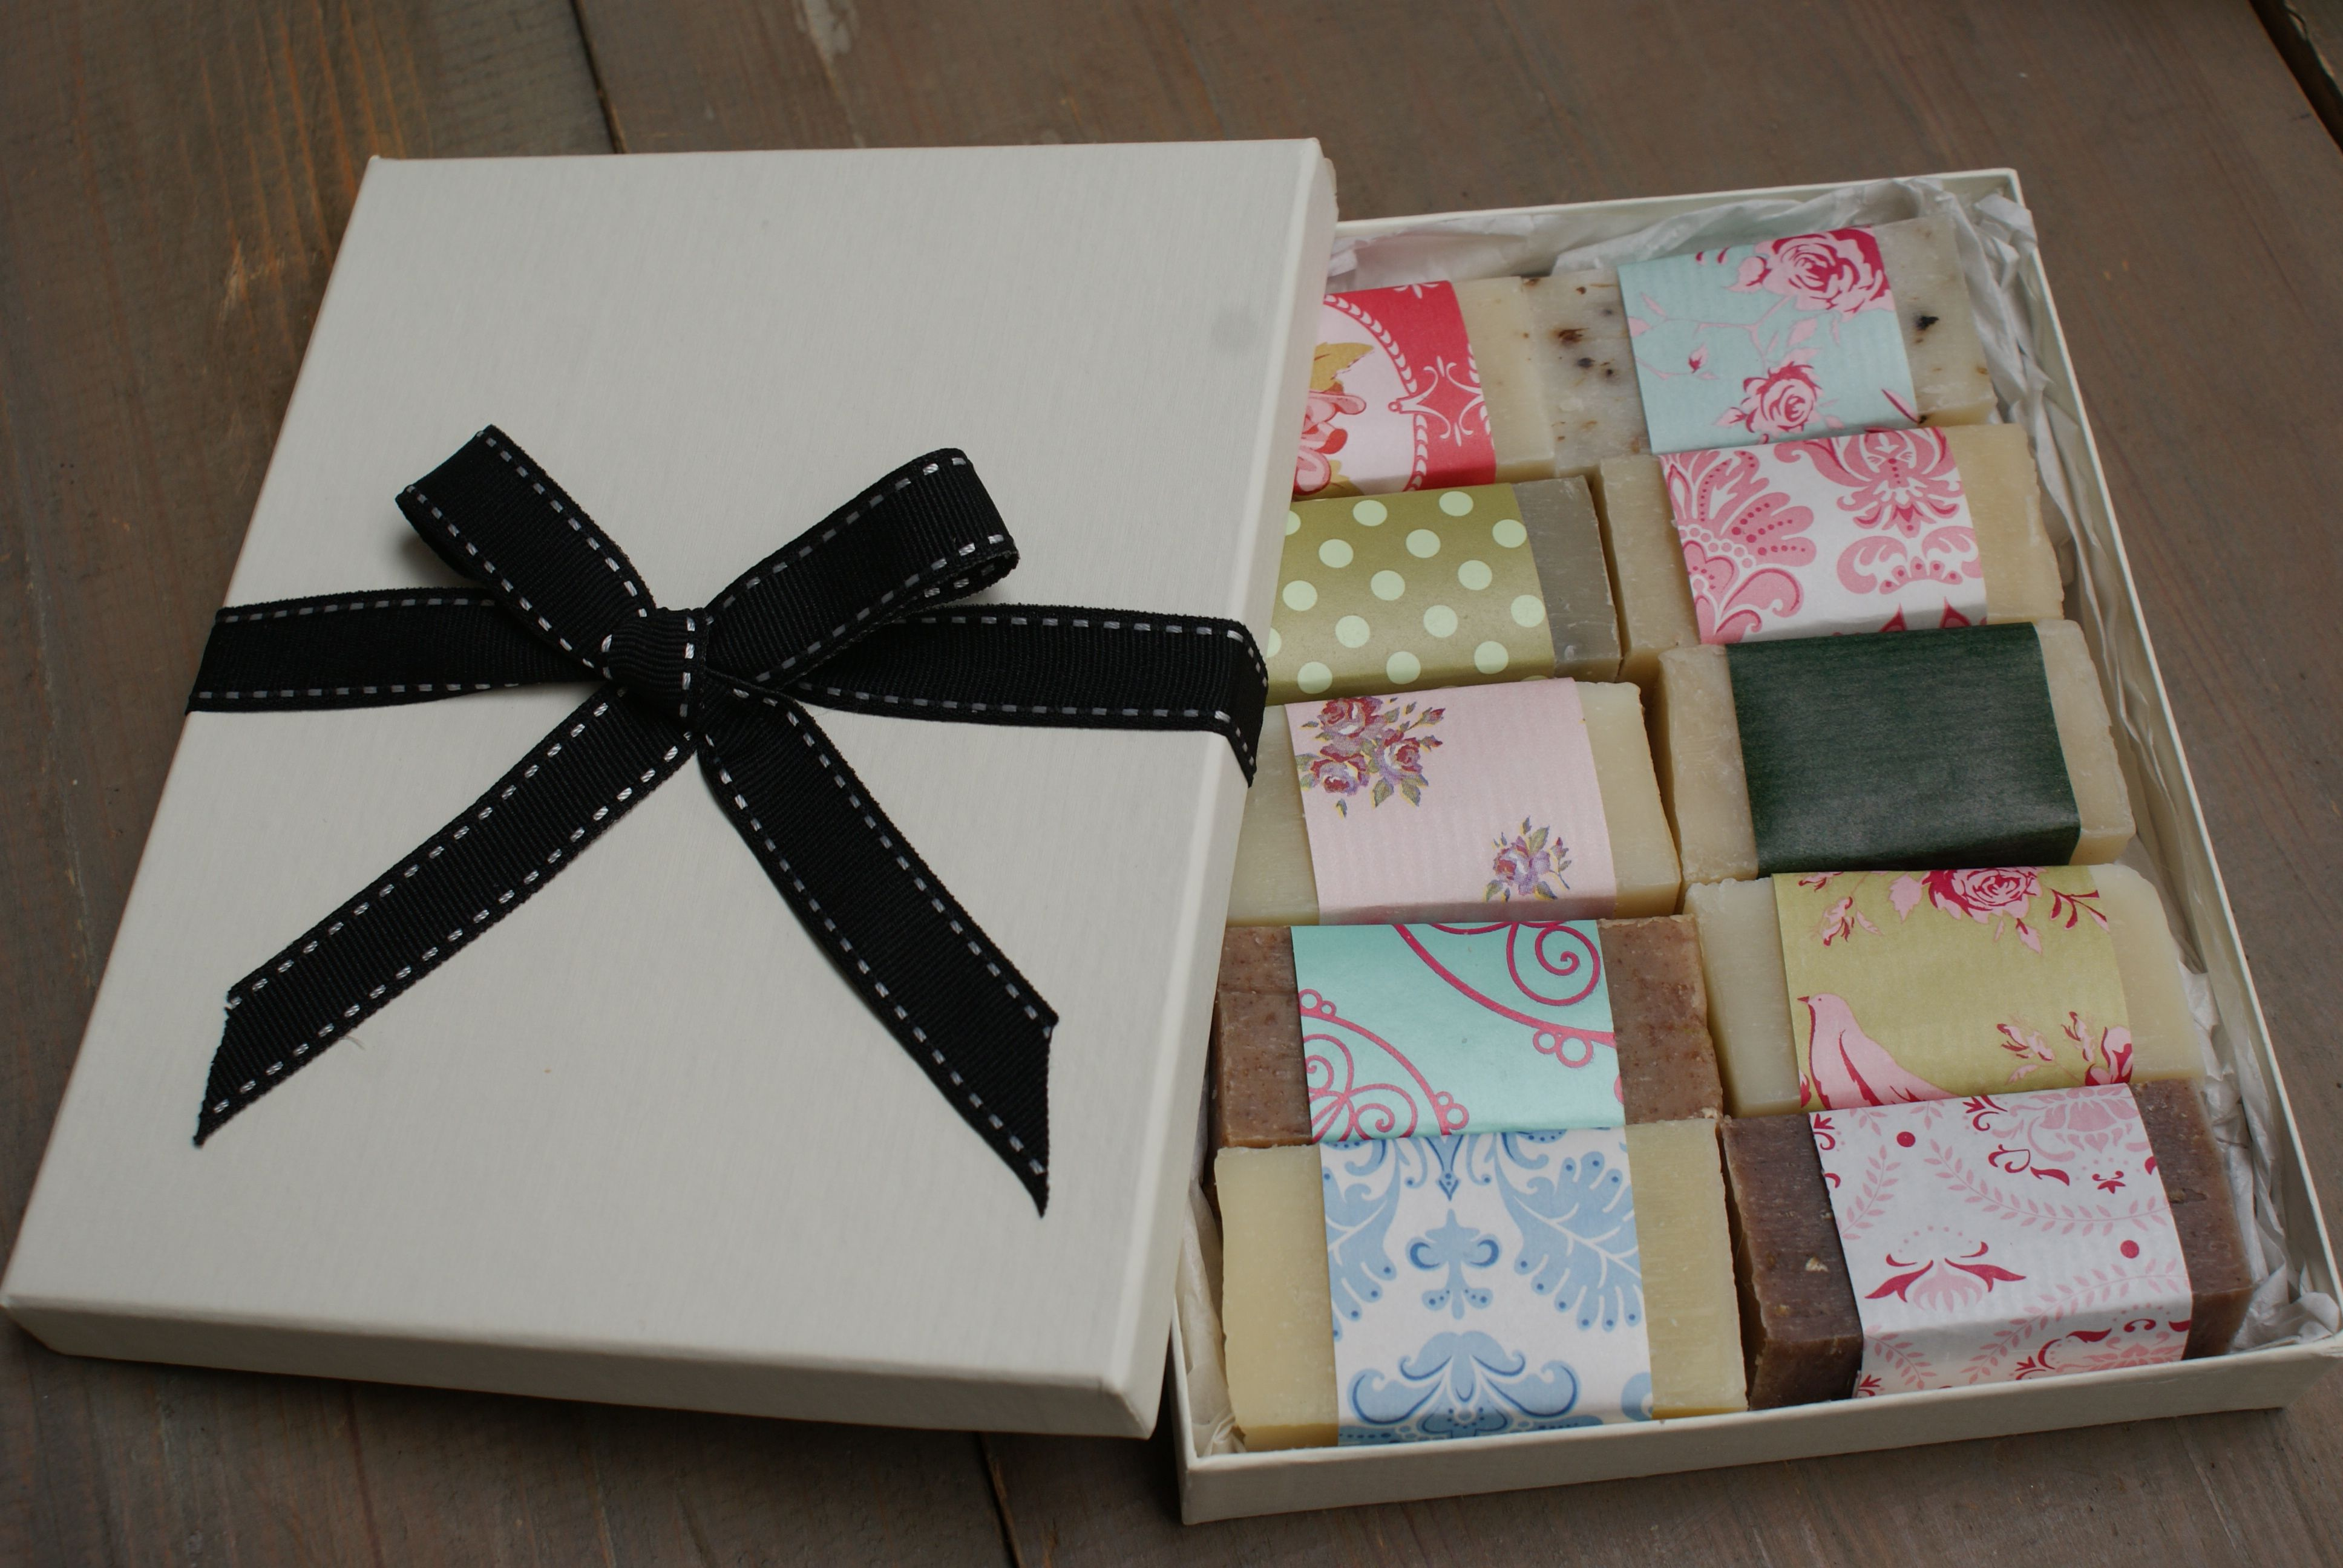 10 Guest soap gift box